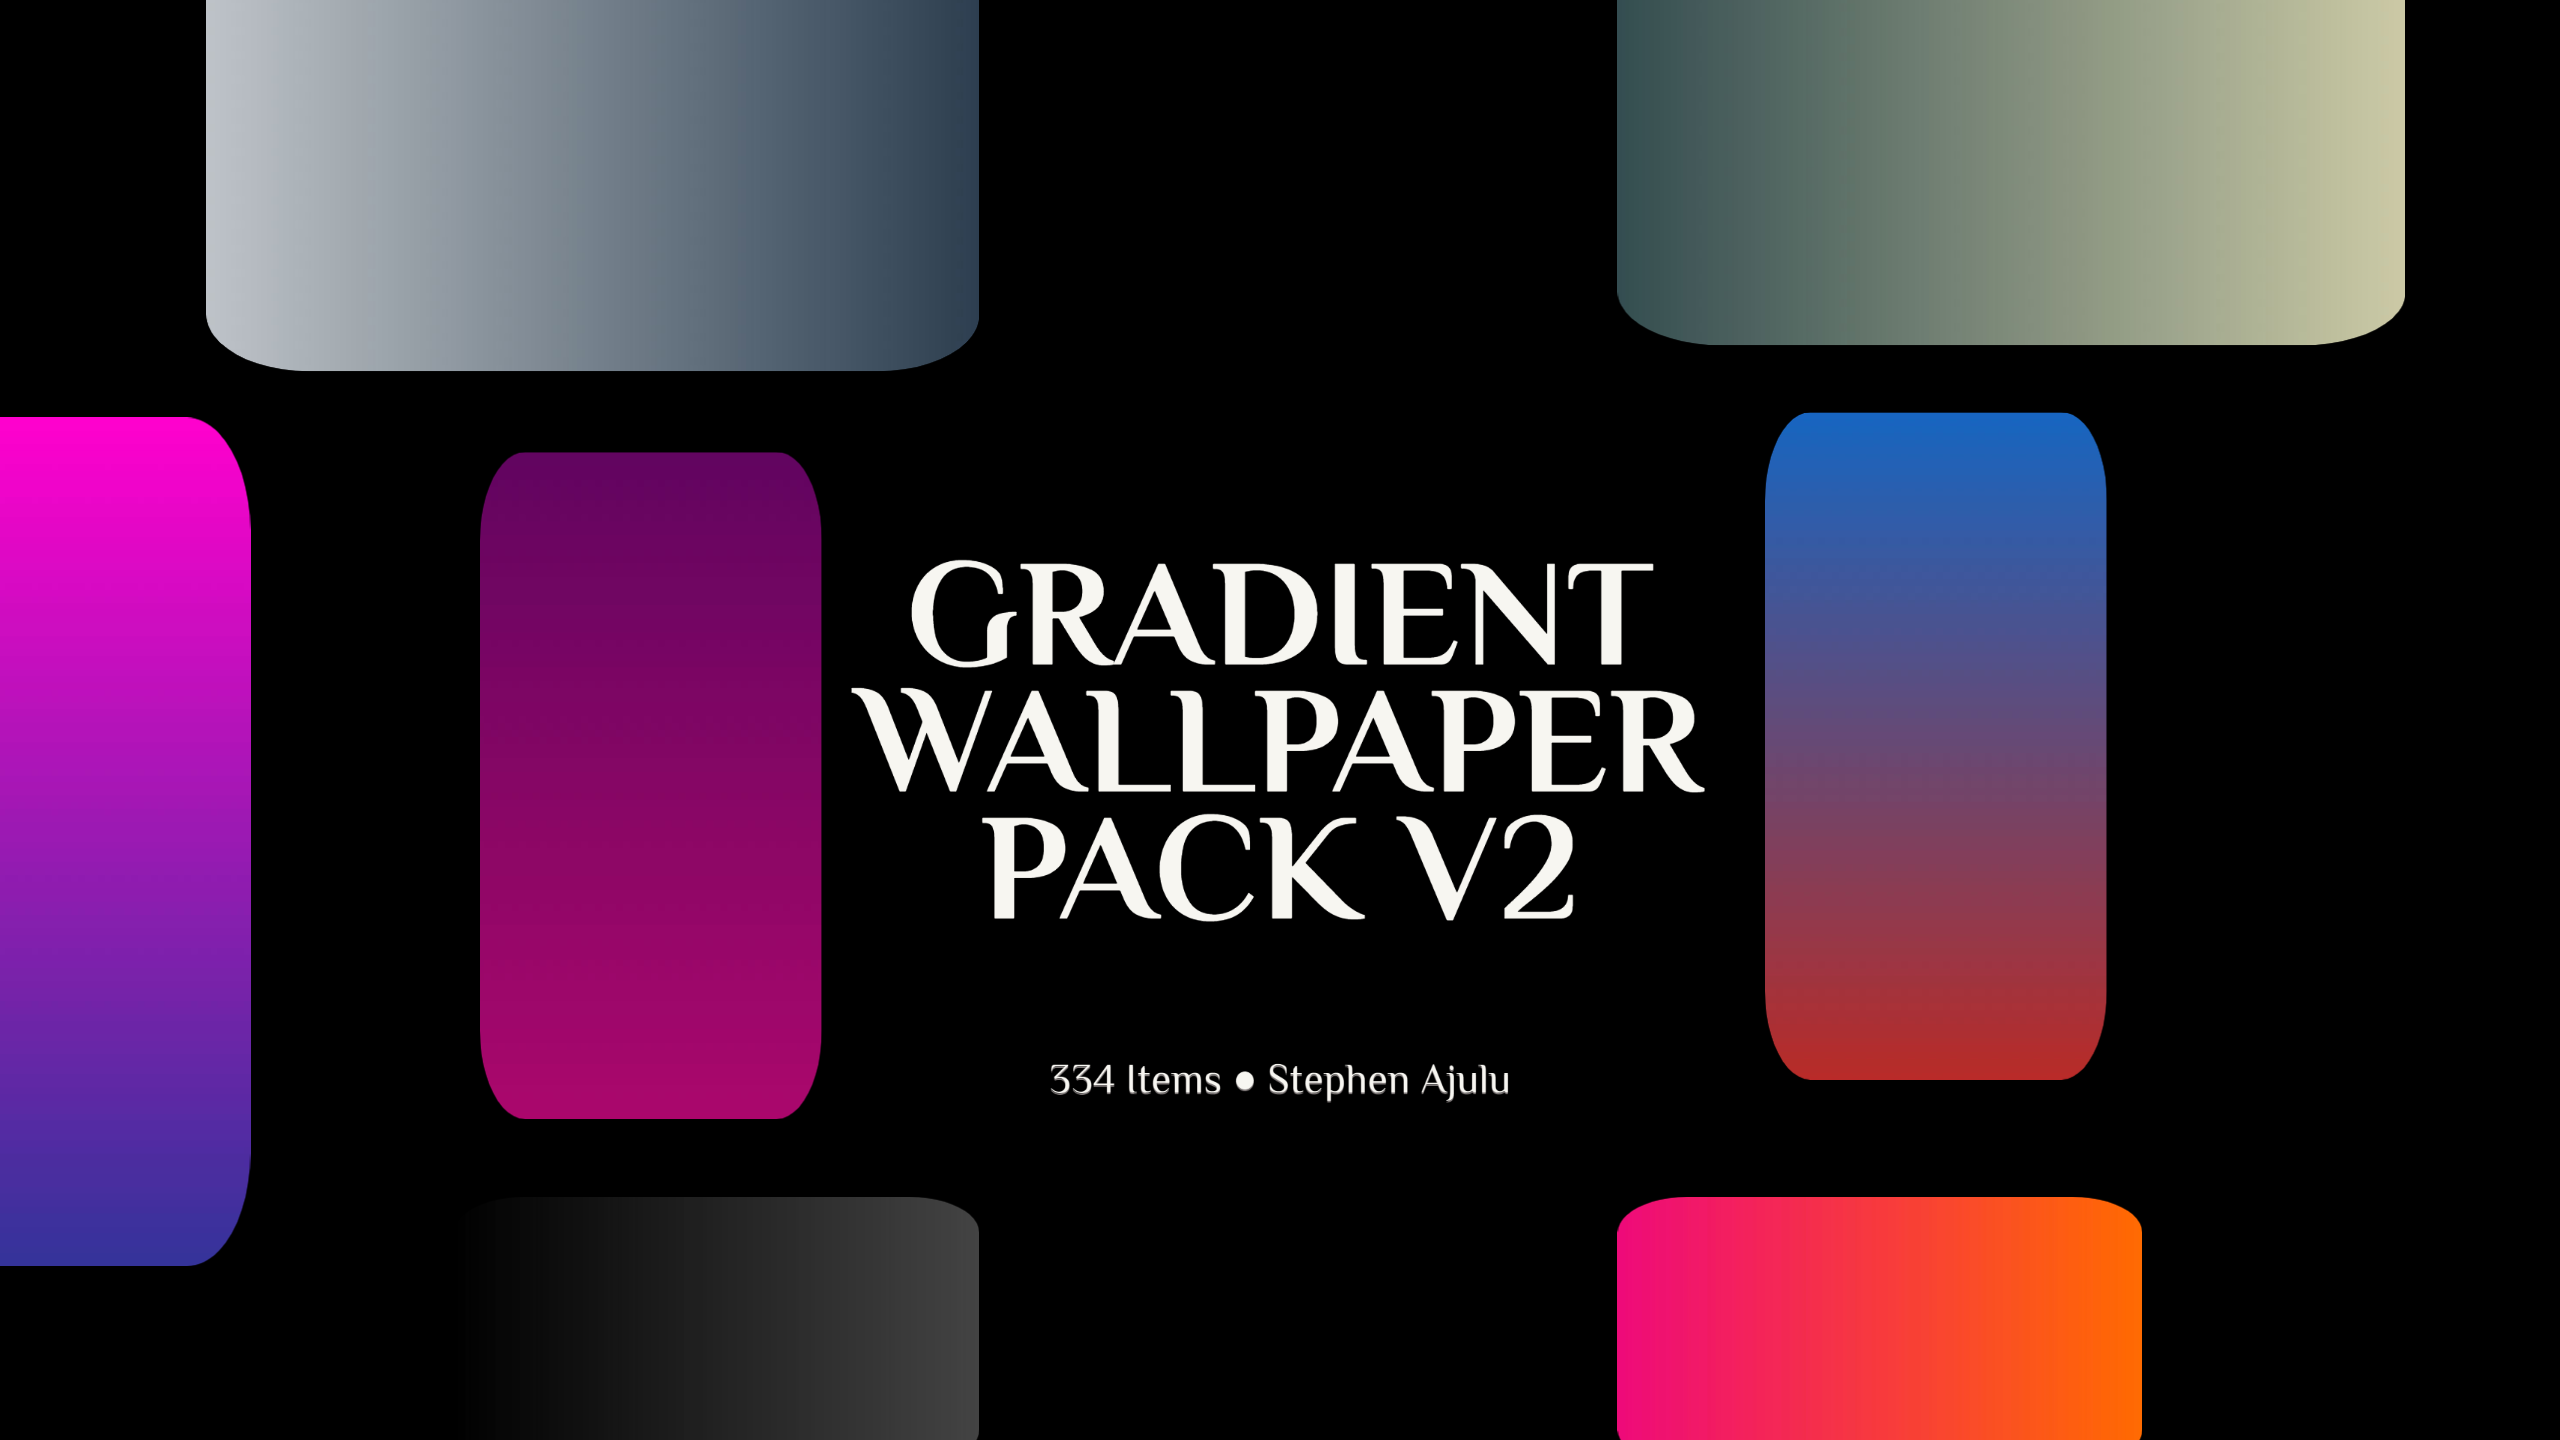 Gradient Wallpaper Pack Version 2 is Out